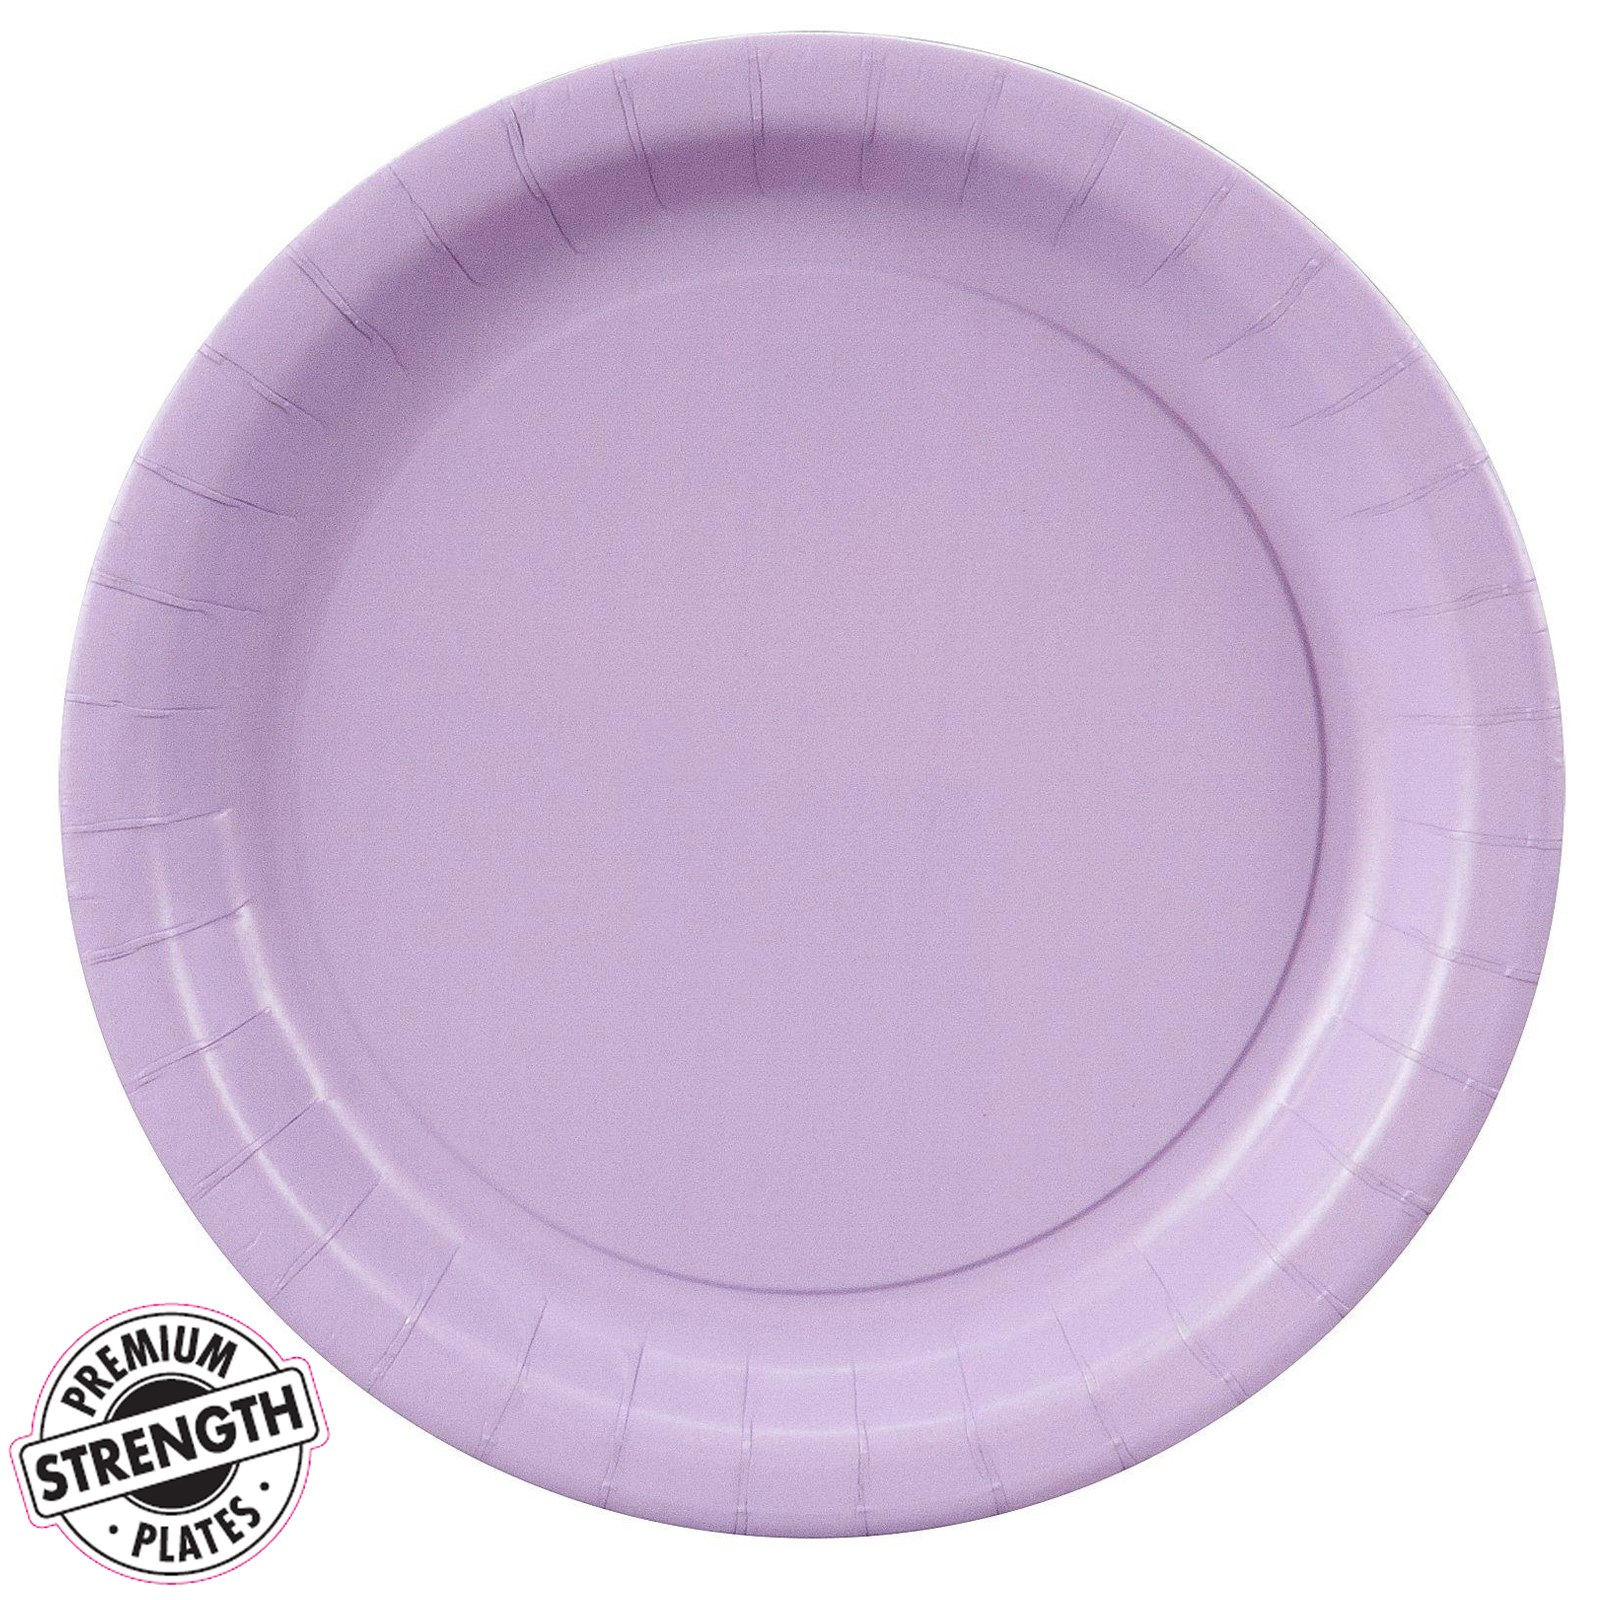 luscious lavender lavender dessert plates 24 count. Black Bedroom Furniture Sets. Home Design Ideas